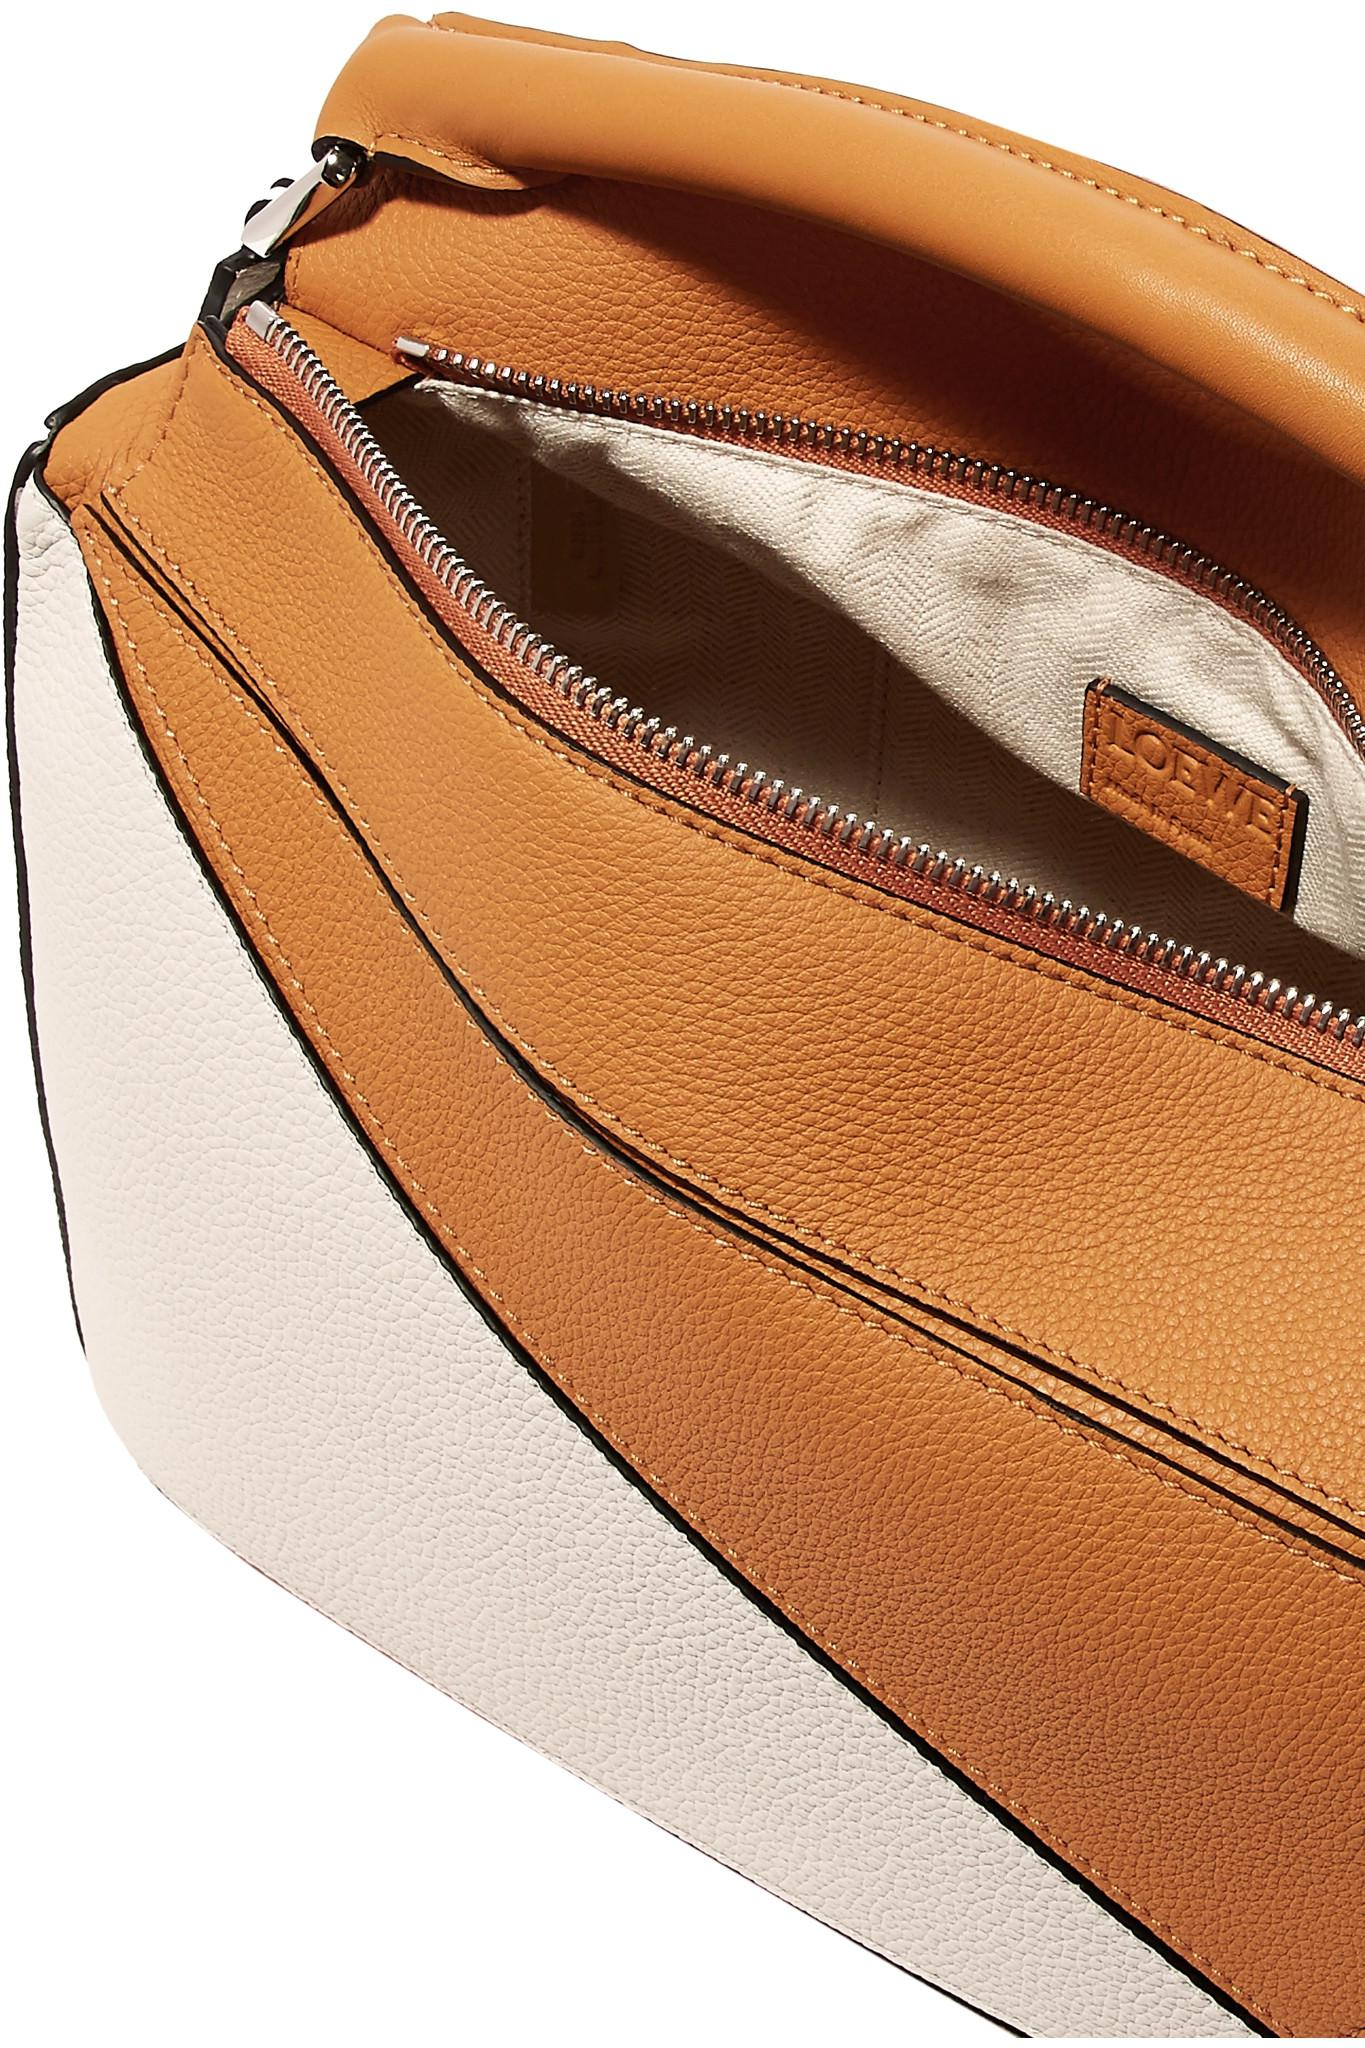 29c6fceeb9fb Lyst - Loewe Puzzle Two-tone Textured-leather Shoulder Bag in Brown